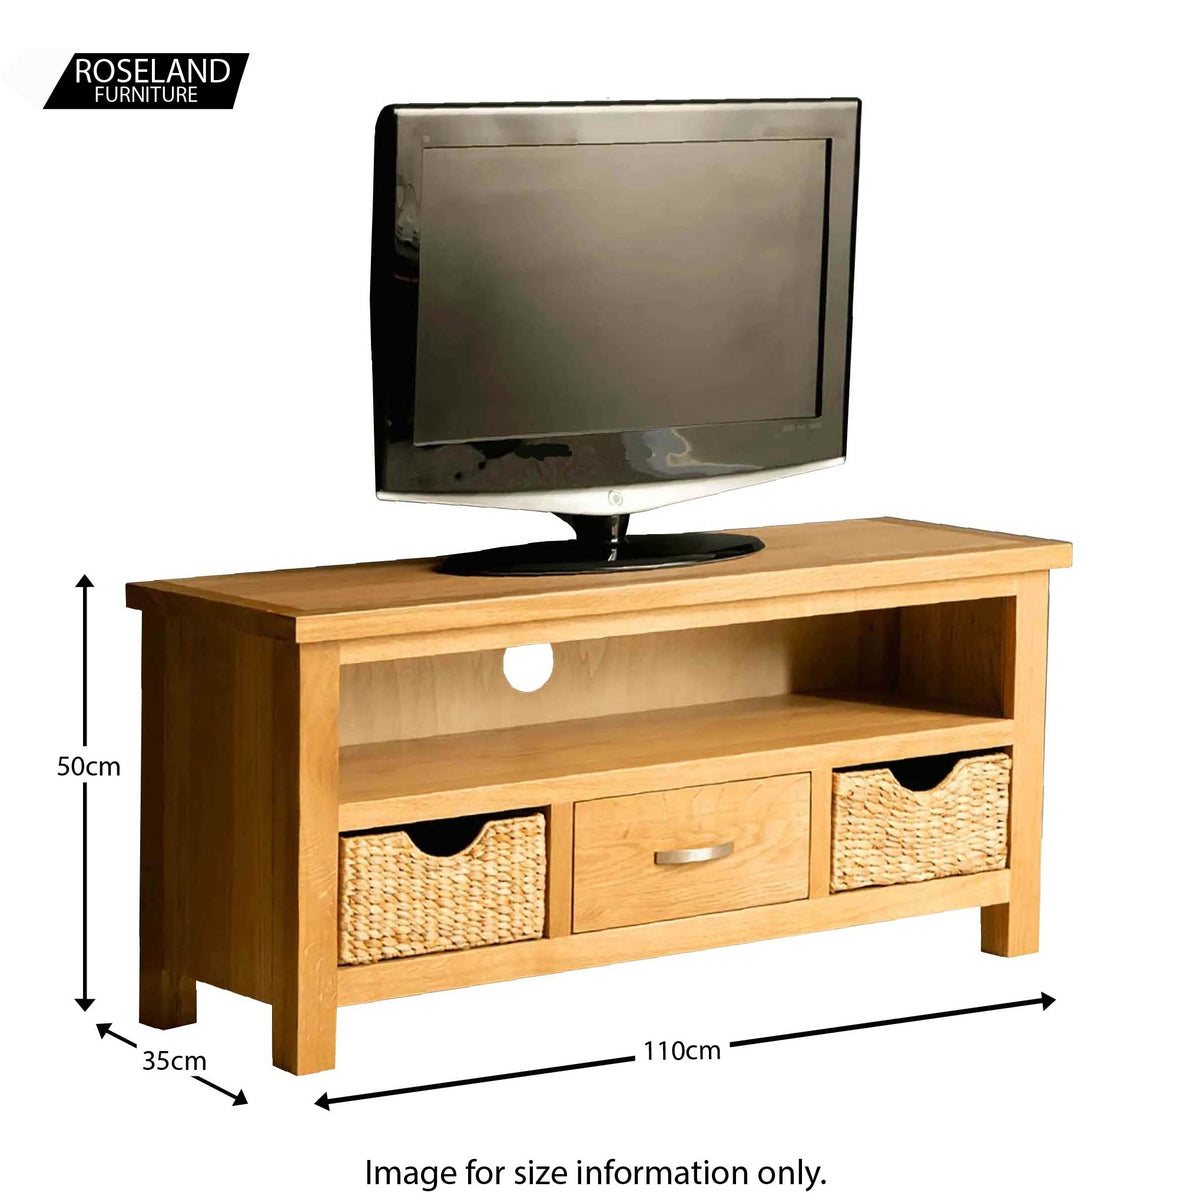 London Oak 110cm TV Stand with Baskets - size guide